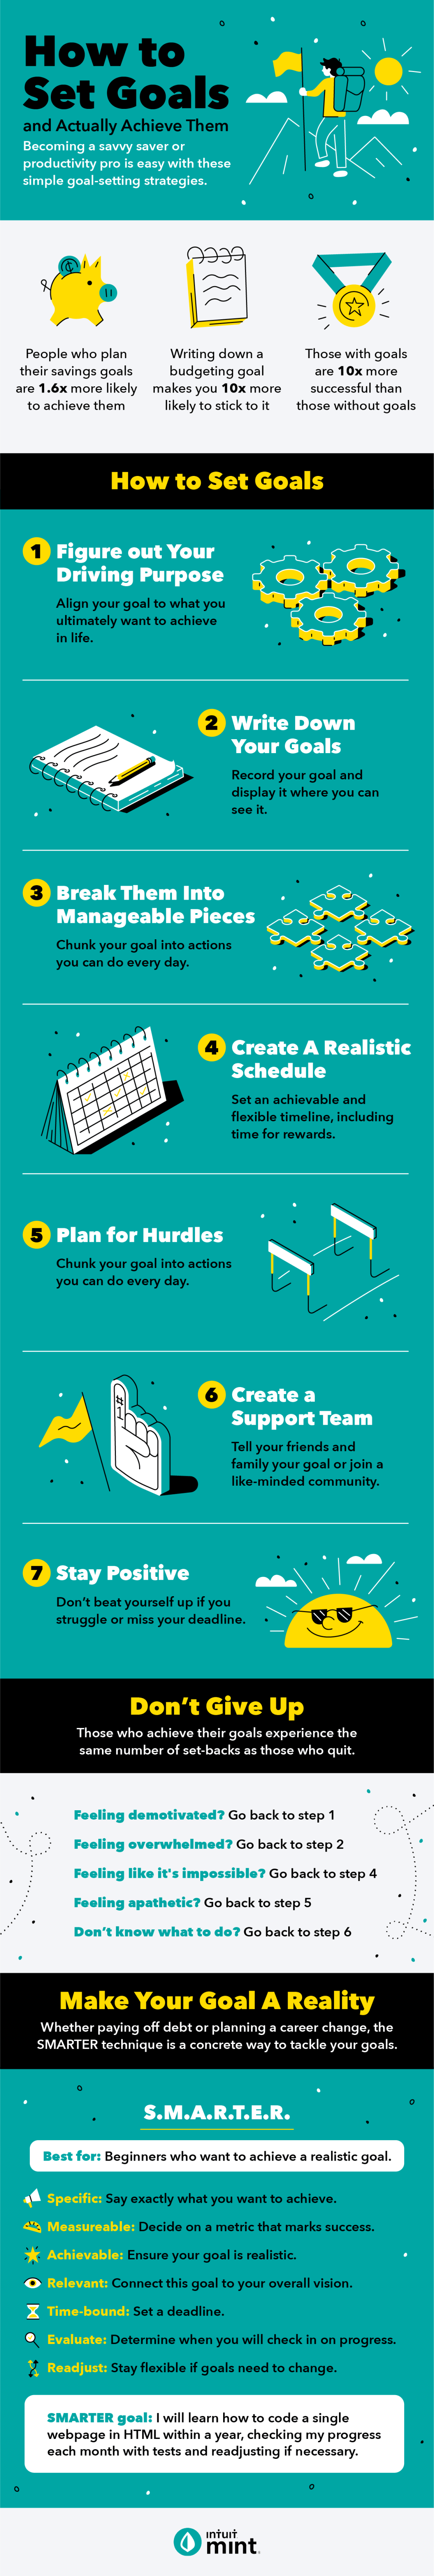 How to Set Goals and Achieve Them - Infographic